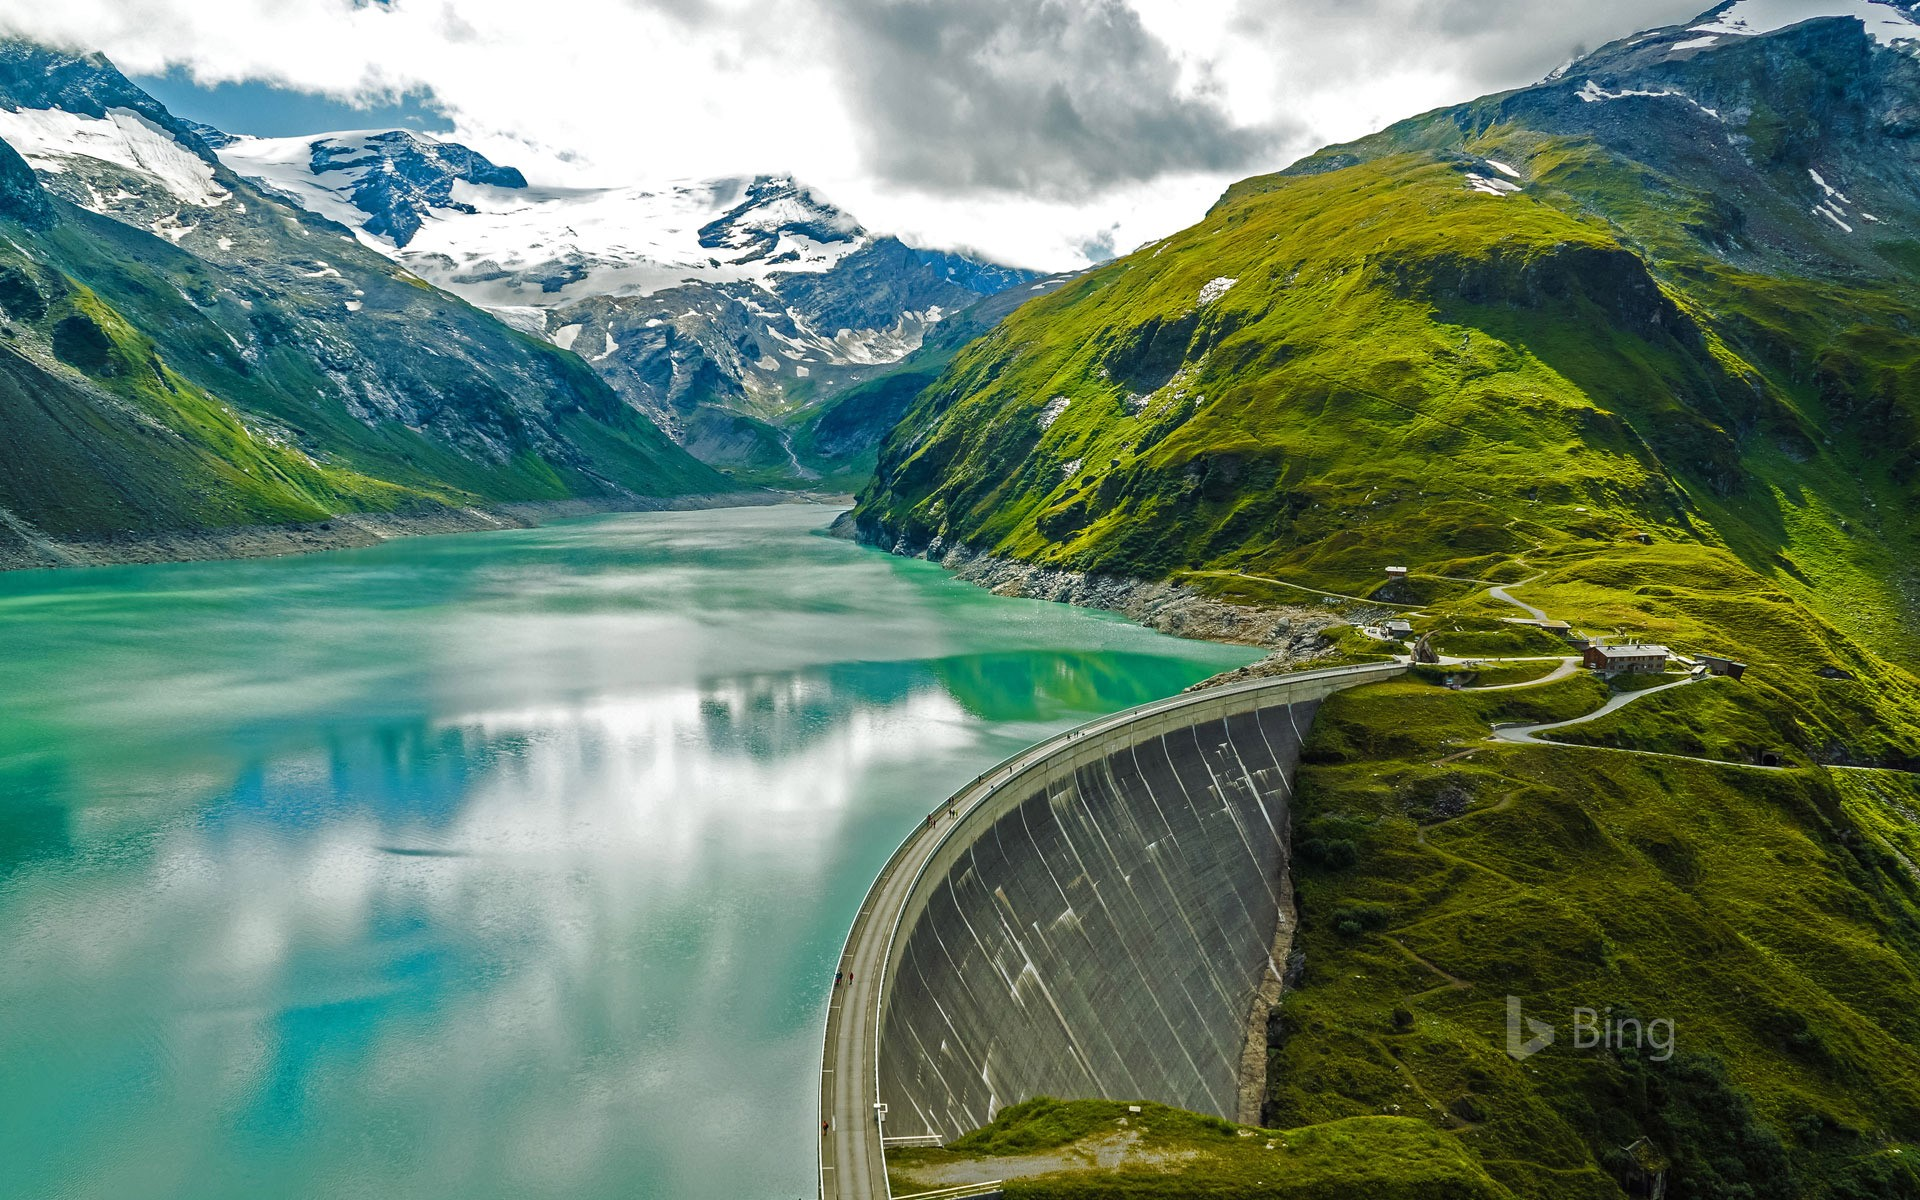 Mooserboden Reservoir and Mooser Dam near Kaprun, Austria